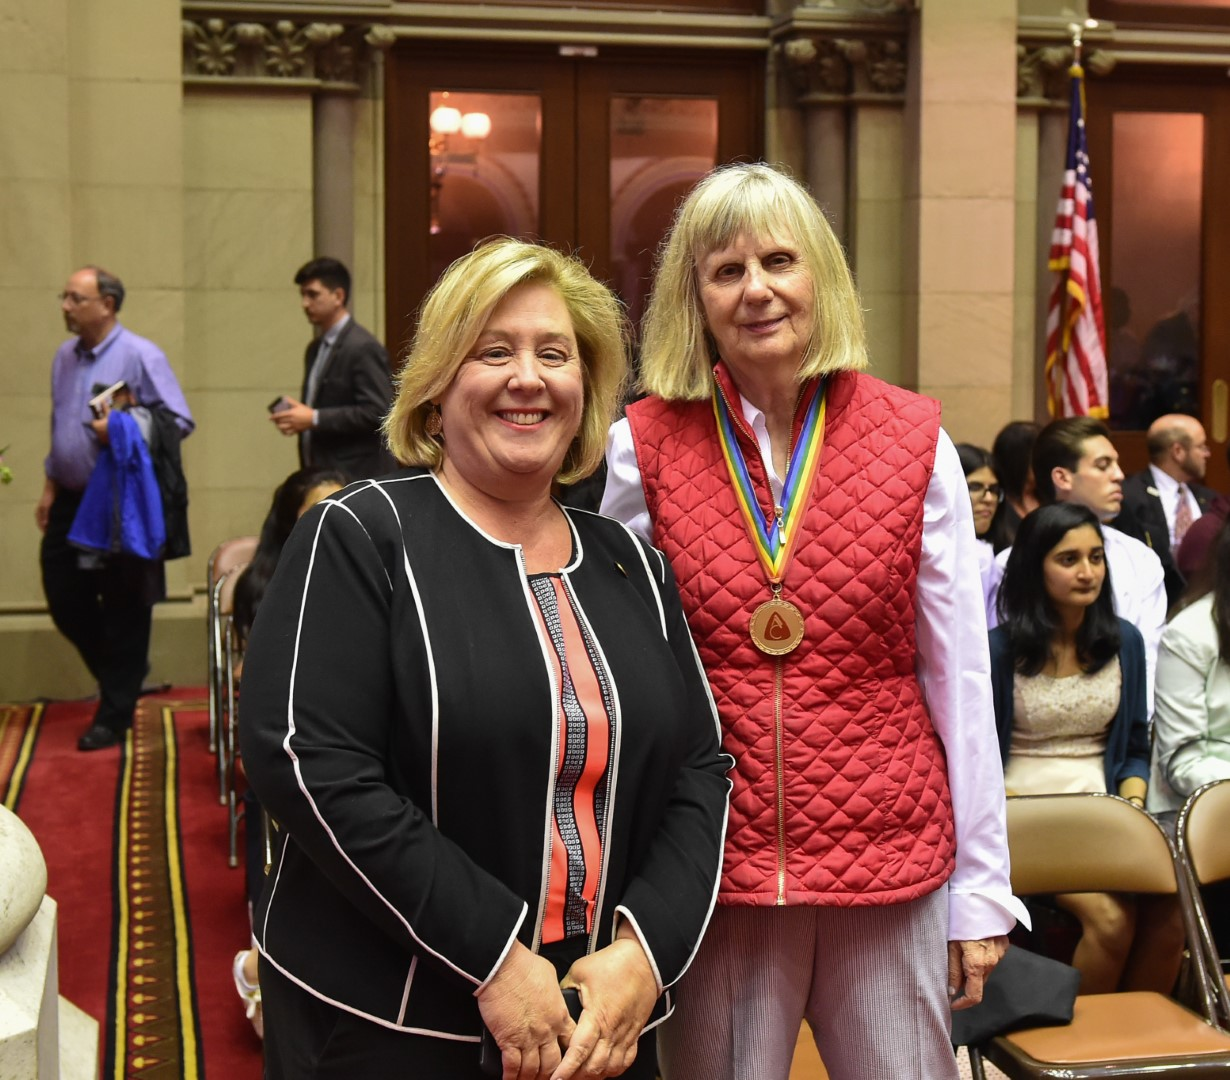 Seawright with Joyce Bahr, President of the Unsealed Initiative and constituent at the Unsealed Initiative Press Conference held in the back of Assembly Chambers on Tuesday, June 5, 2018.